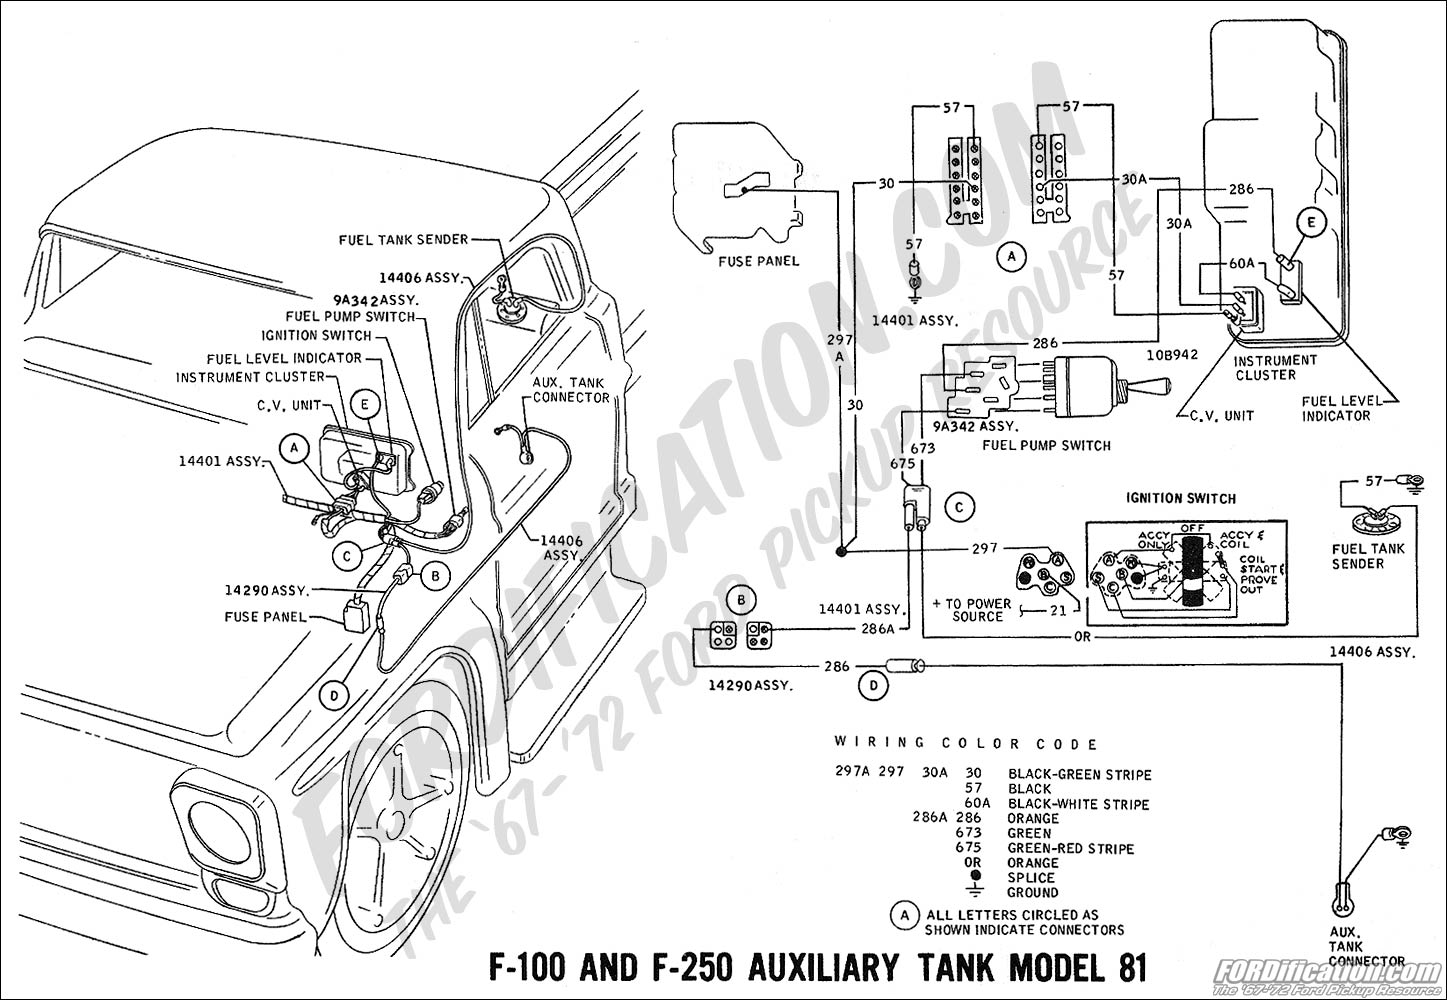 300 ford f 250 wiring diagram 2002 chevy tracker fuse box diagram rh 207 246 123 107 2007 Silverado Radio Wiring Diagram Chevy Truck Wiring Diagram